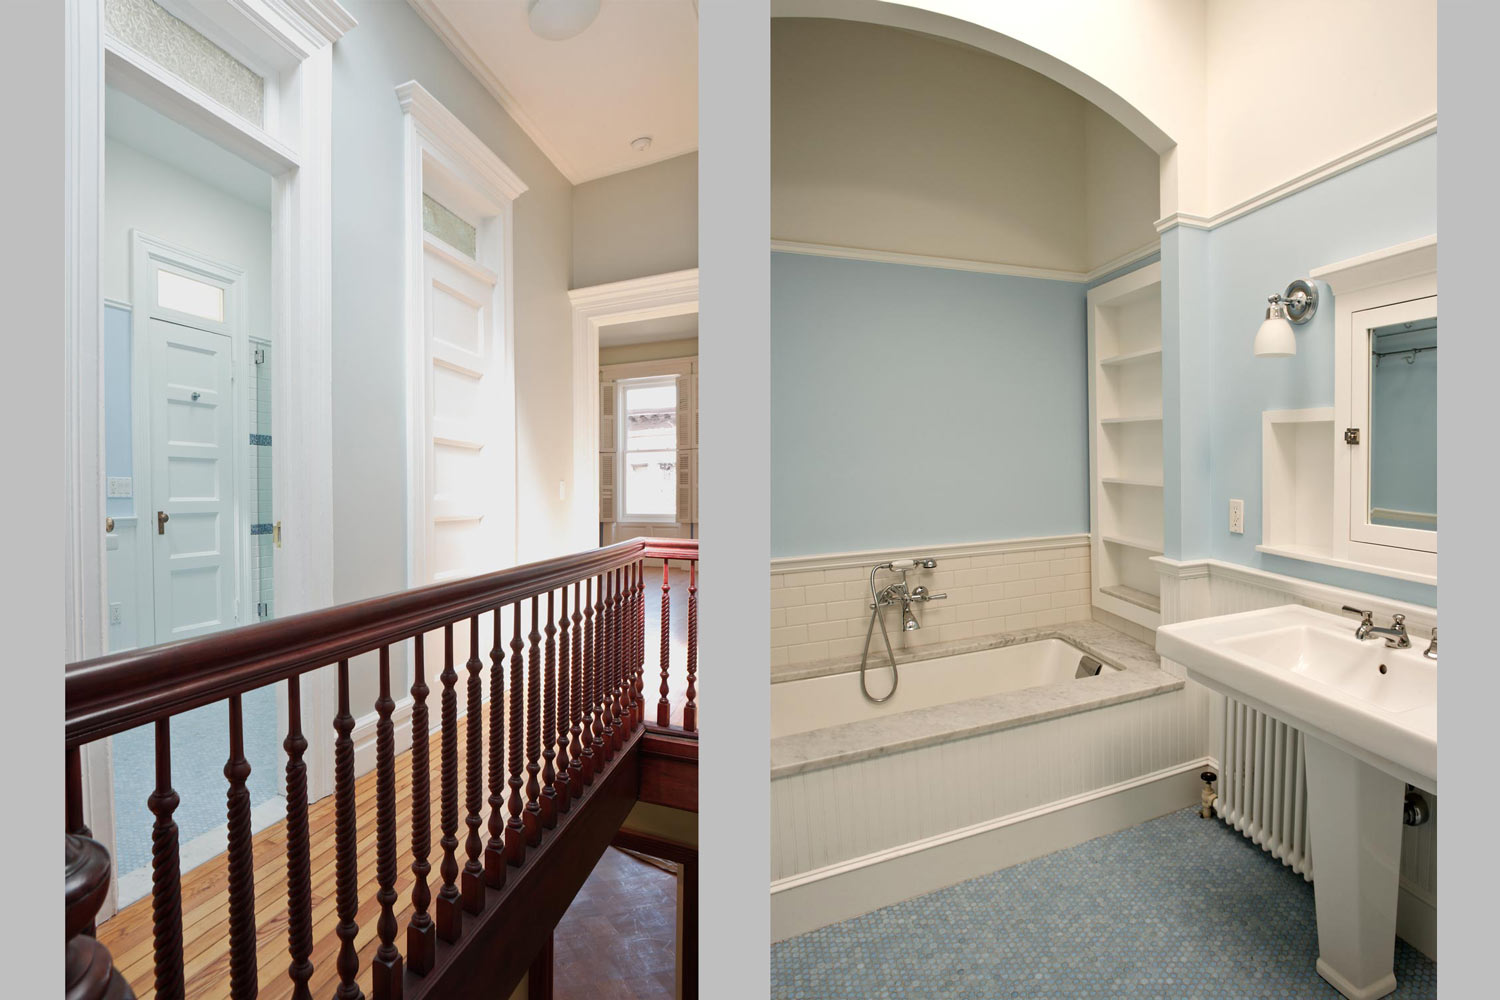 Upstairs OCV transformed the service core into a large modern bathroom.